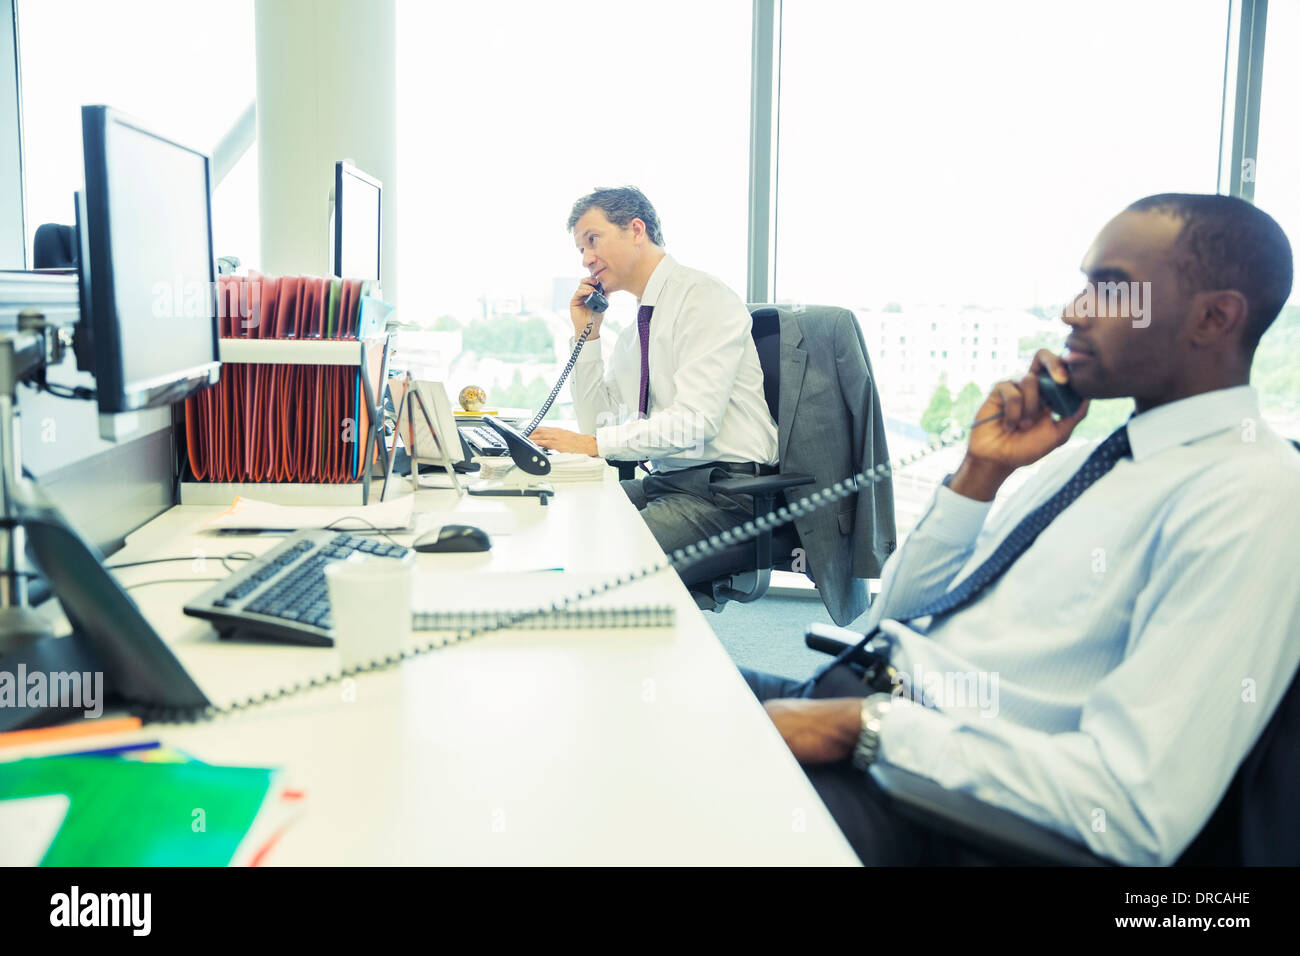 Businessmen talking on telephones in office - Stock Image